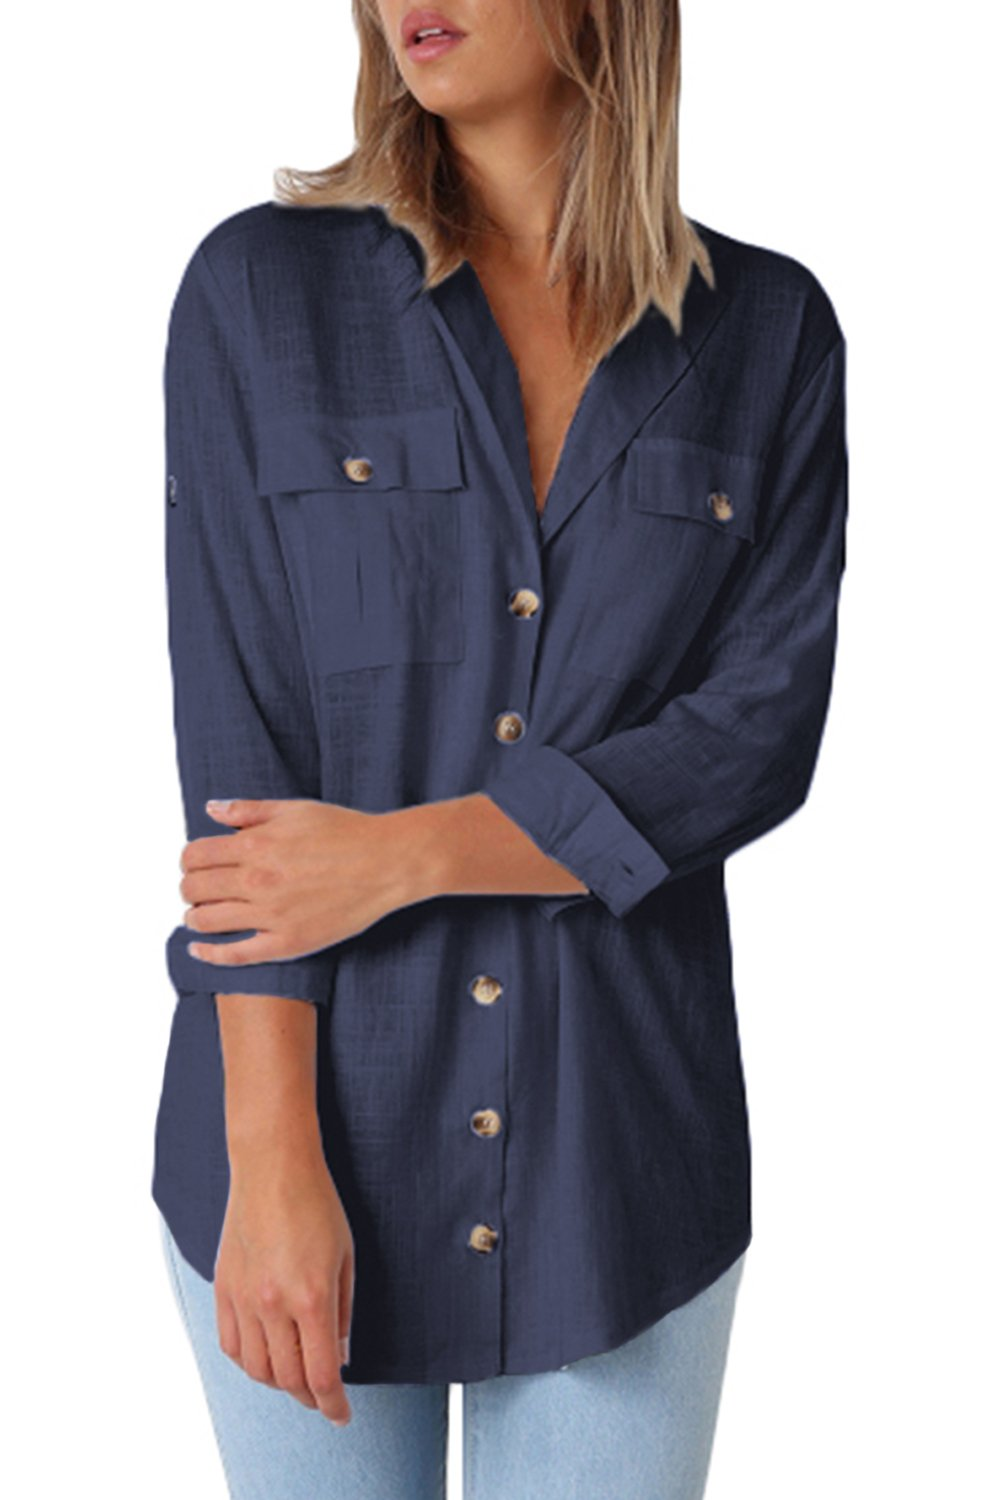 Navy Blue Buttoned Pockets Shawl Collar Linen Blouse-Tops, Blouses & Shirts-Azura Exchange